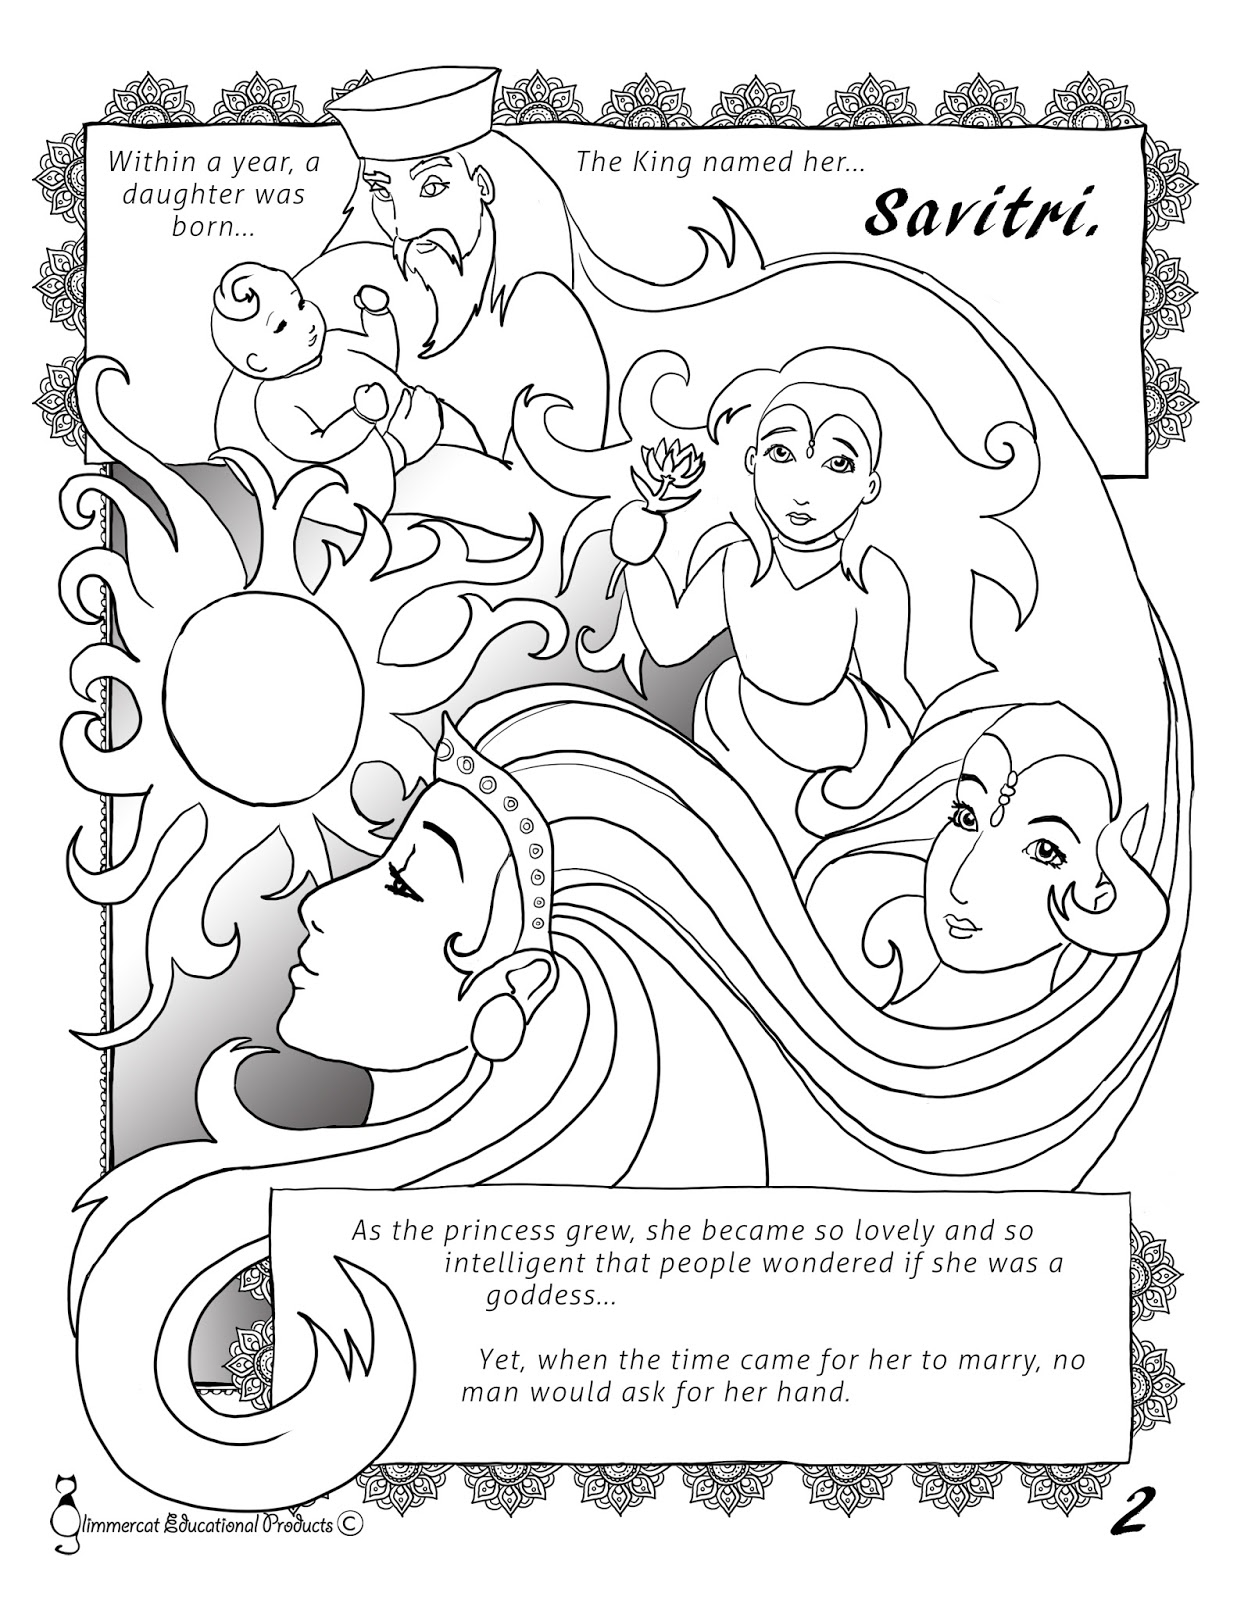 Glimmercat Education Our Free Indus River Valley Mini Activity Packet